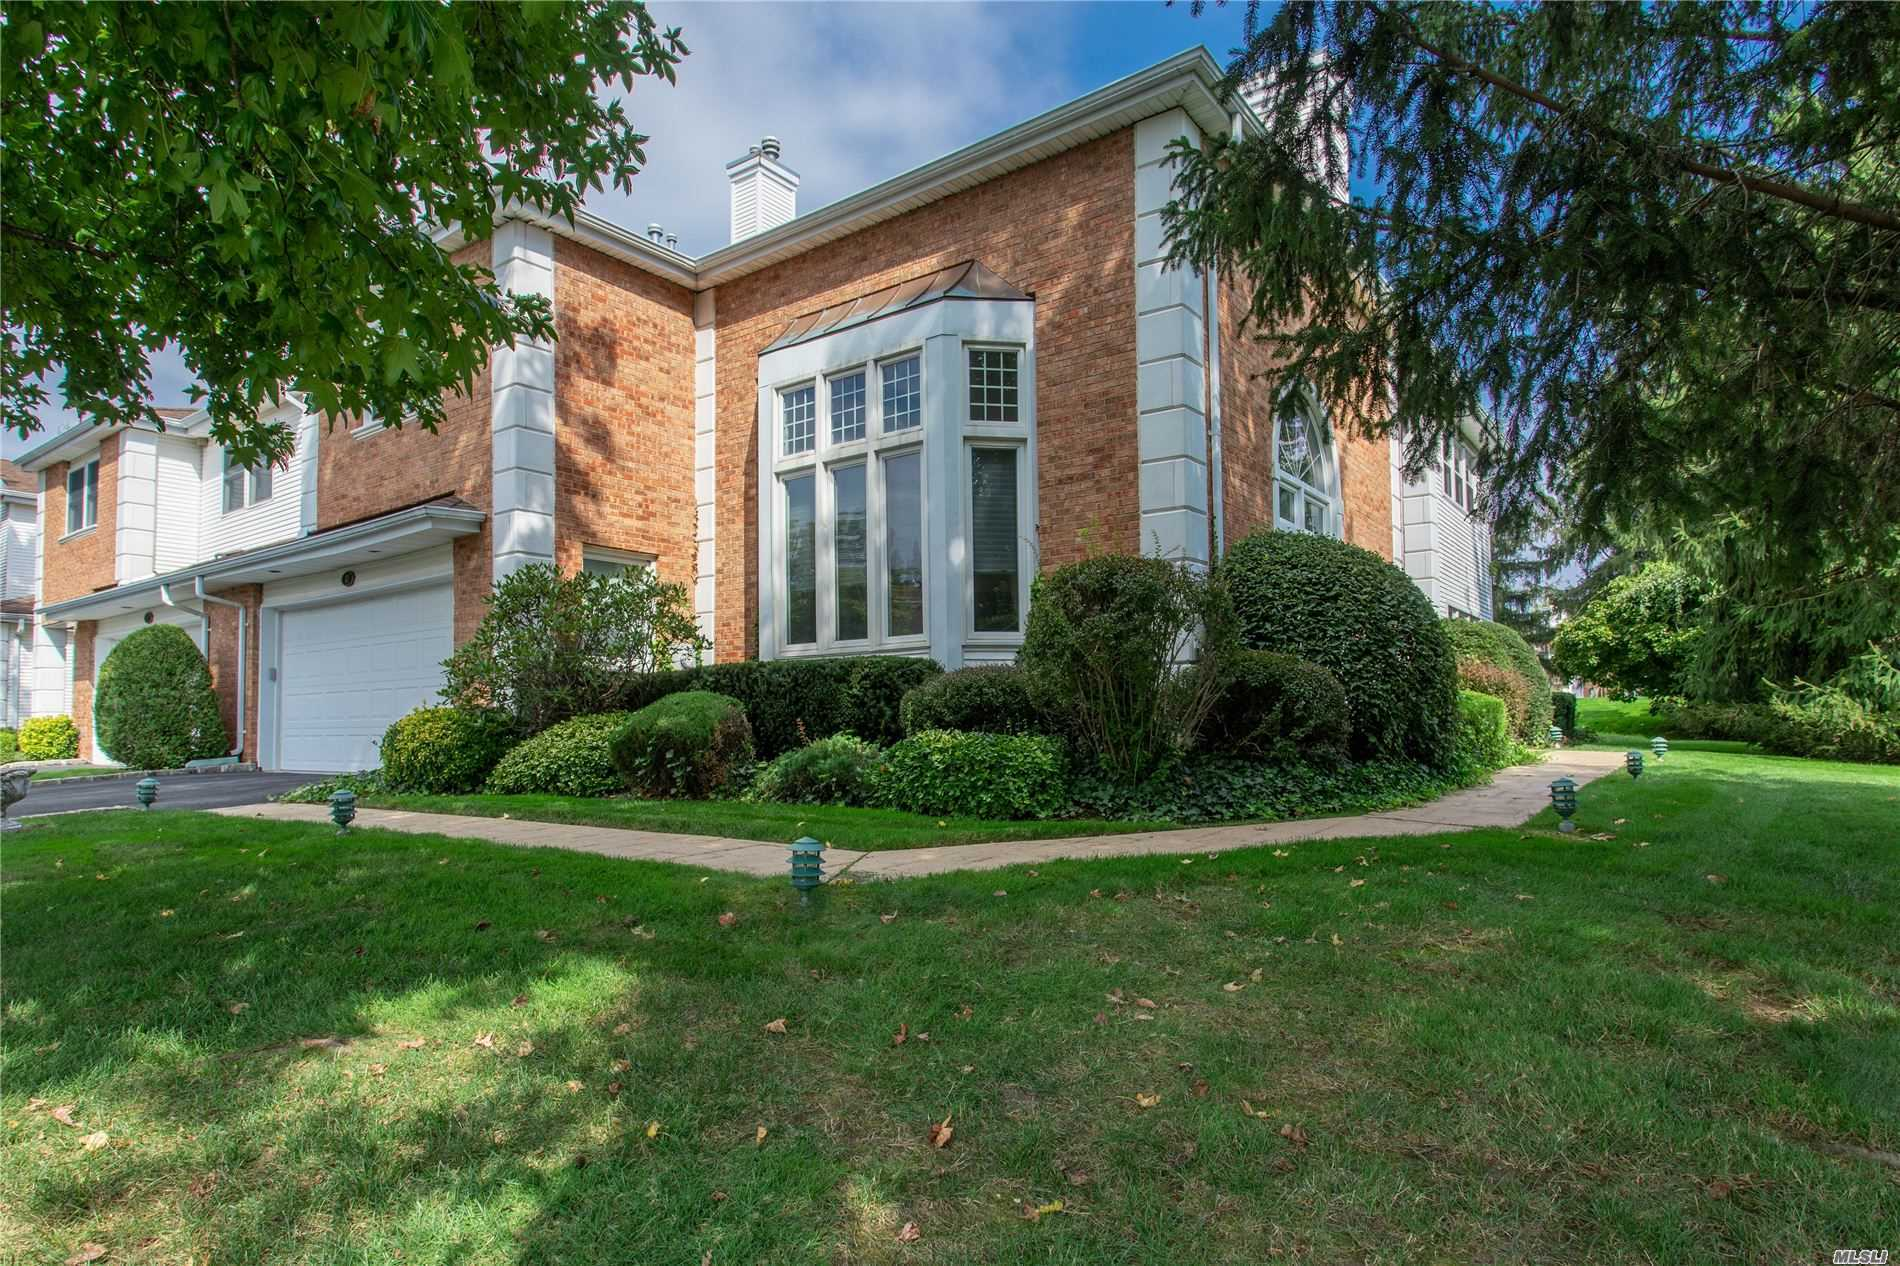 38 Hamlet Dr - Commack, New York